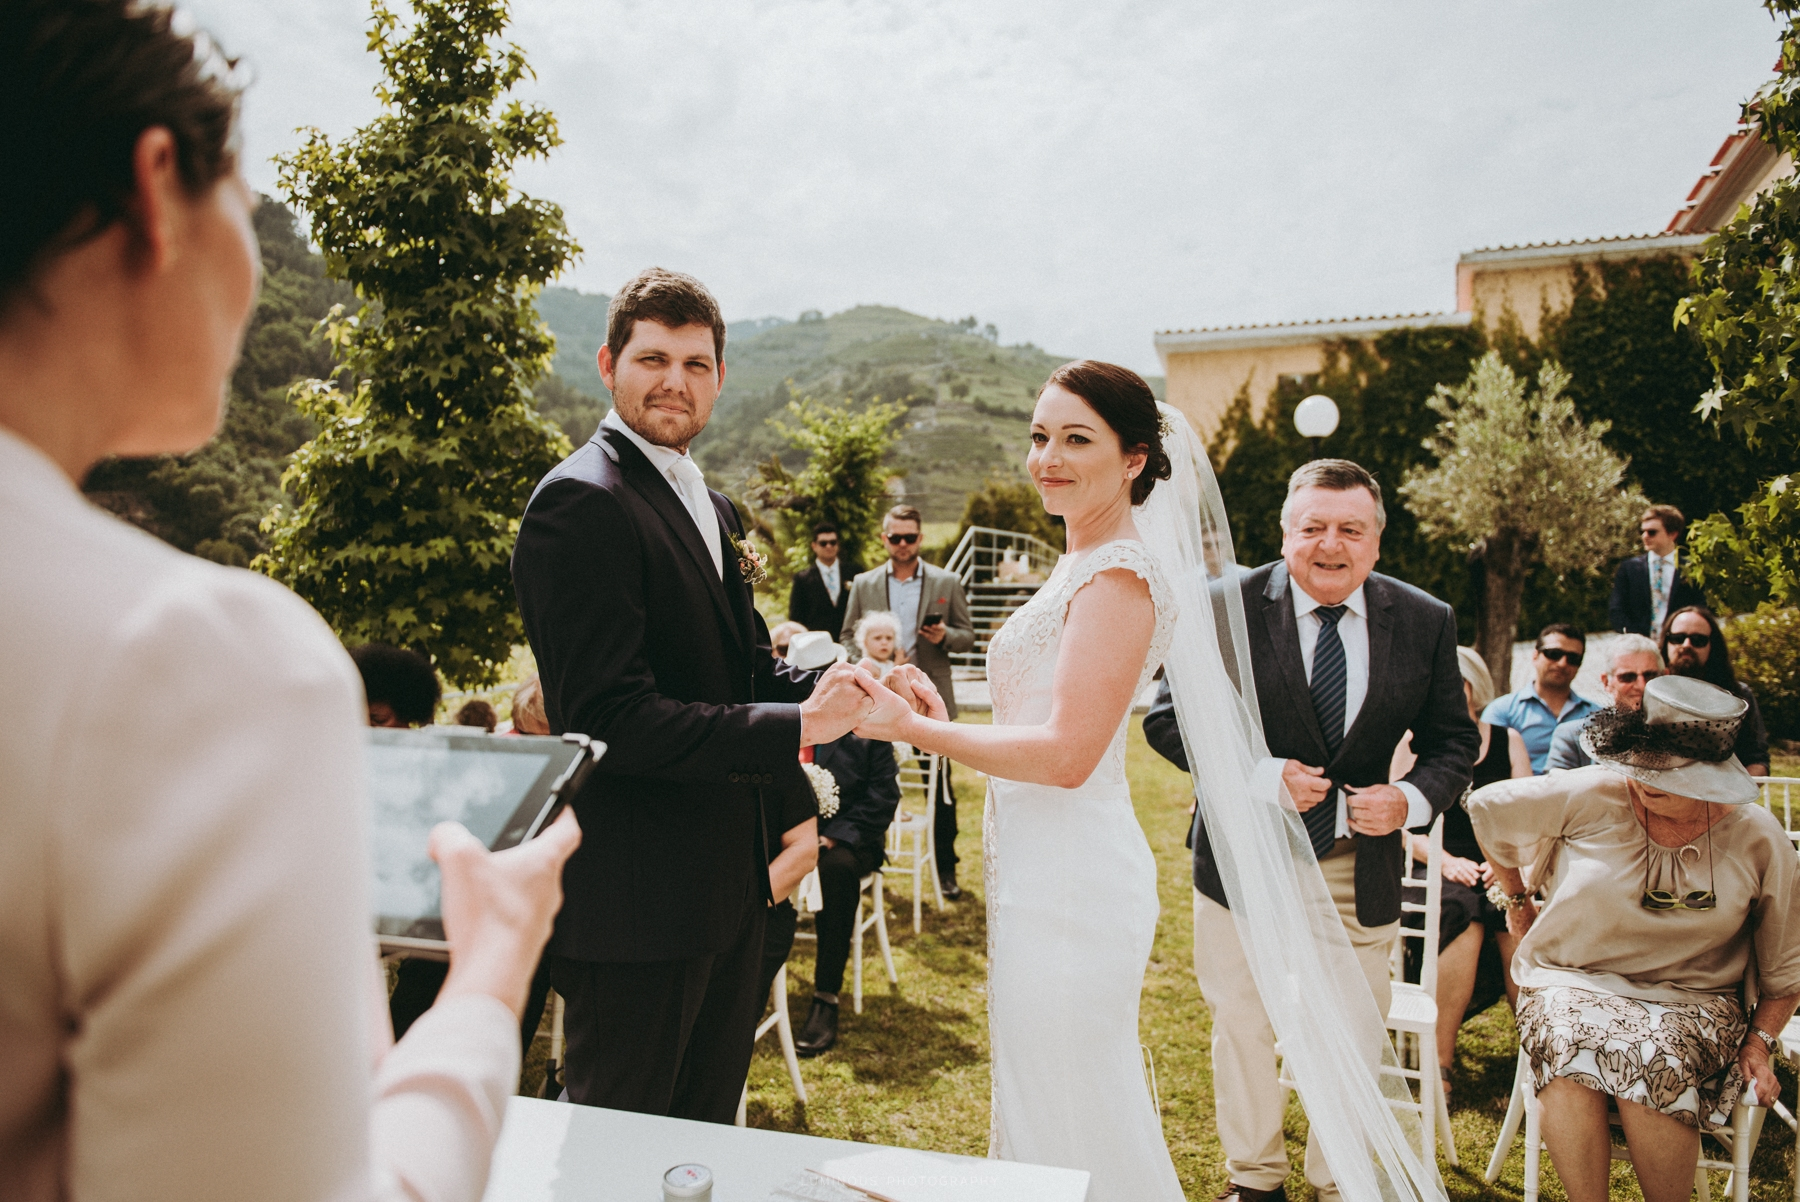 Bride and groom holding each other's hands as they look at their Douro Valley wedding celebrant with trees and rolling vineyards in the background.